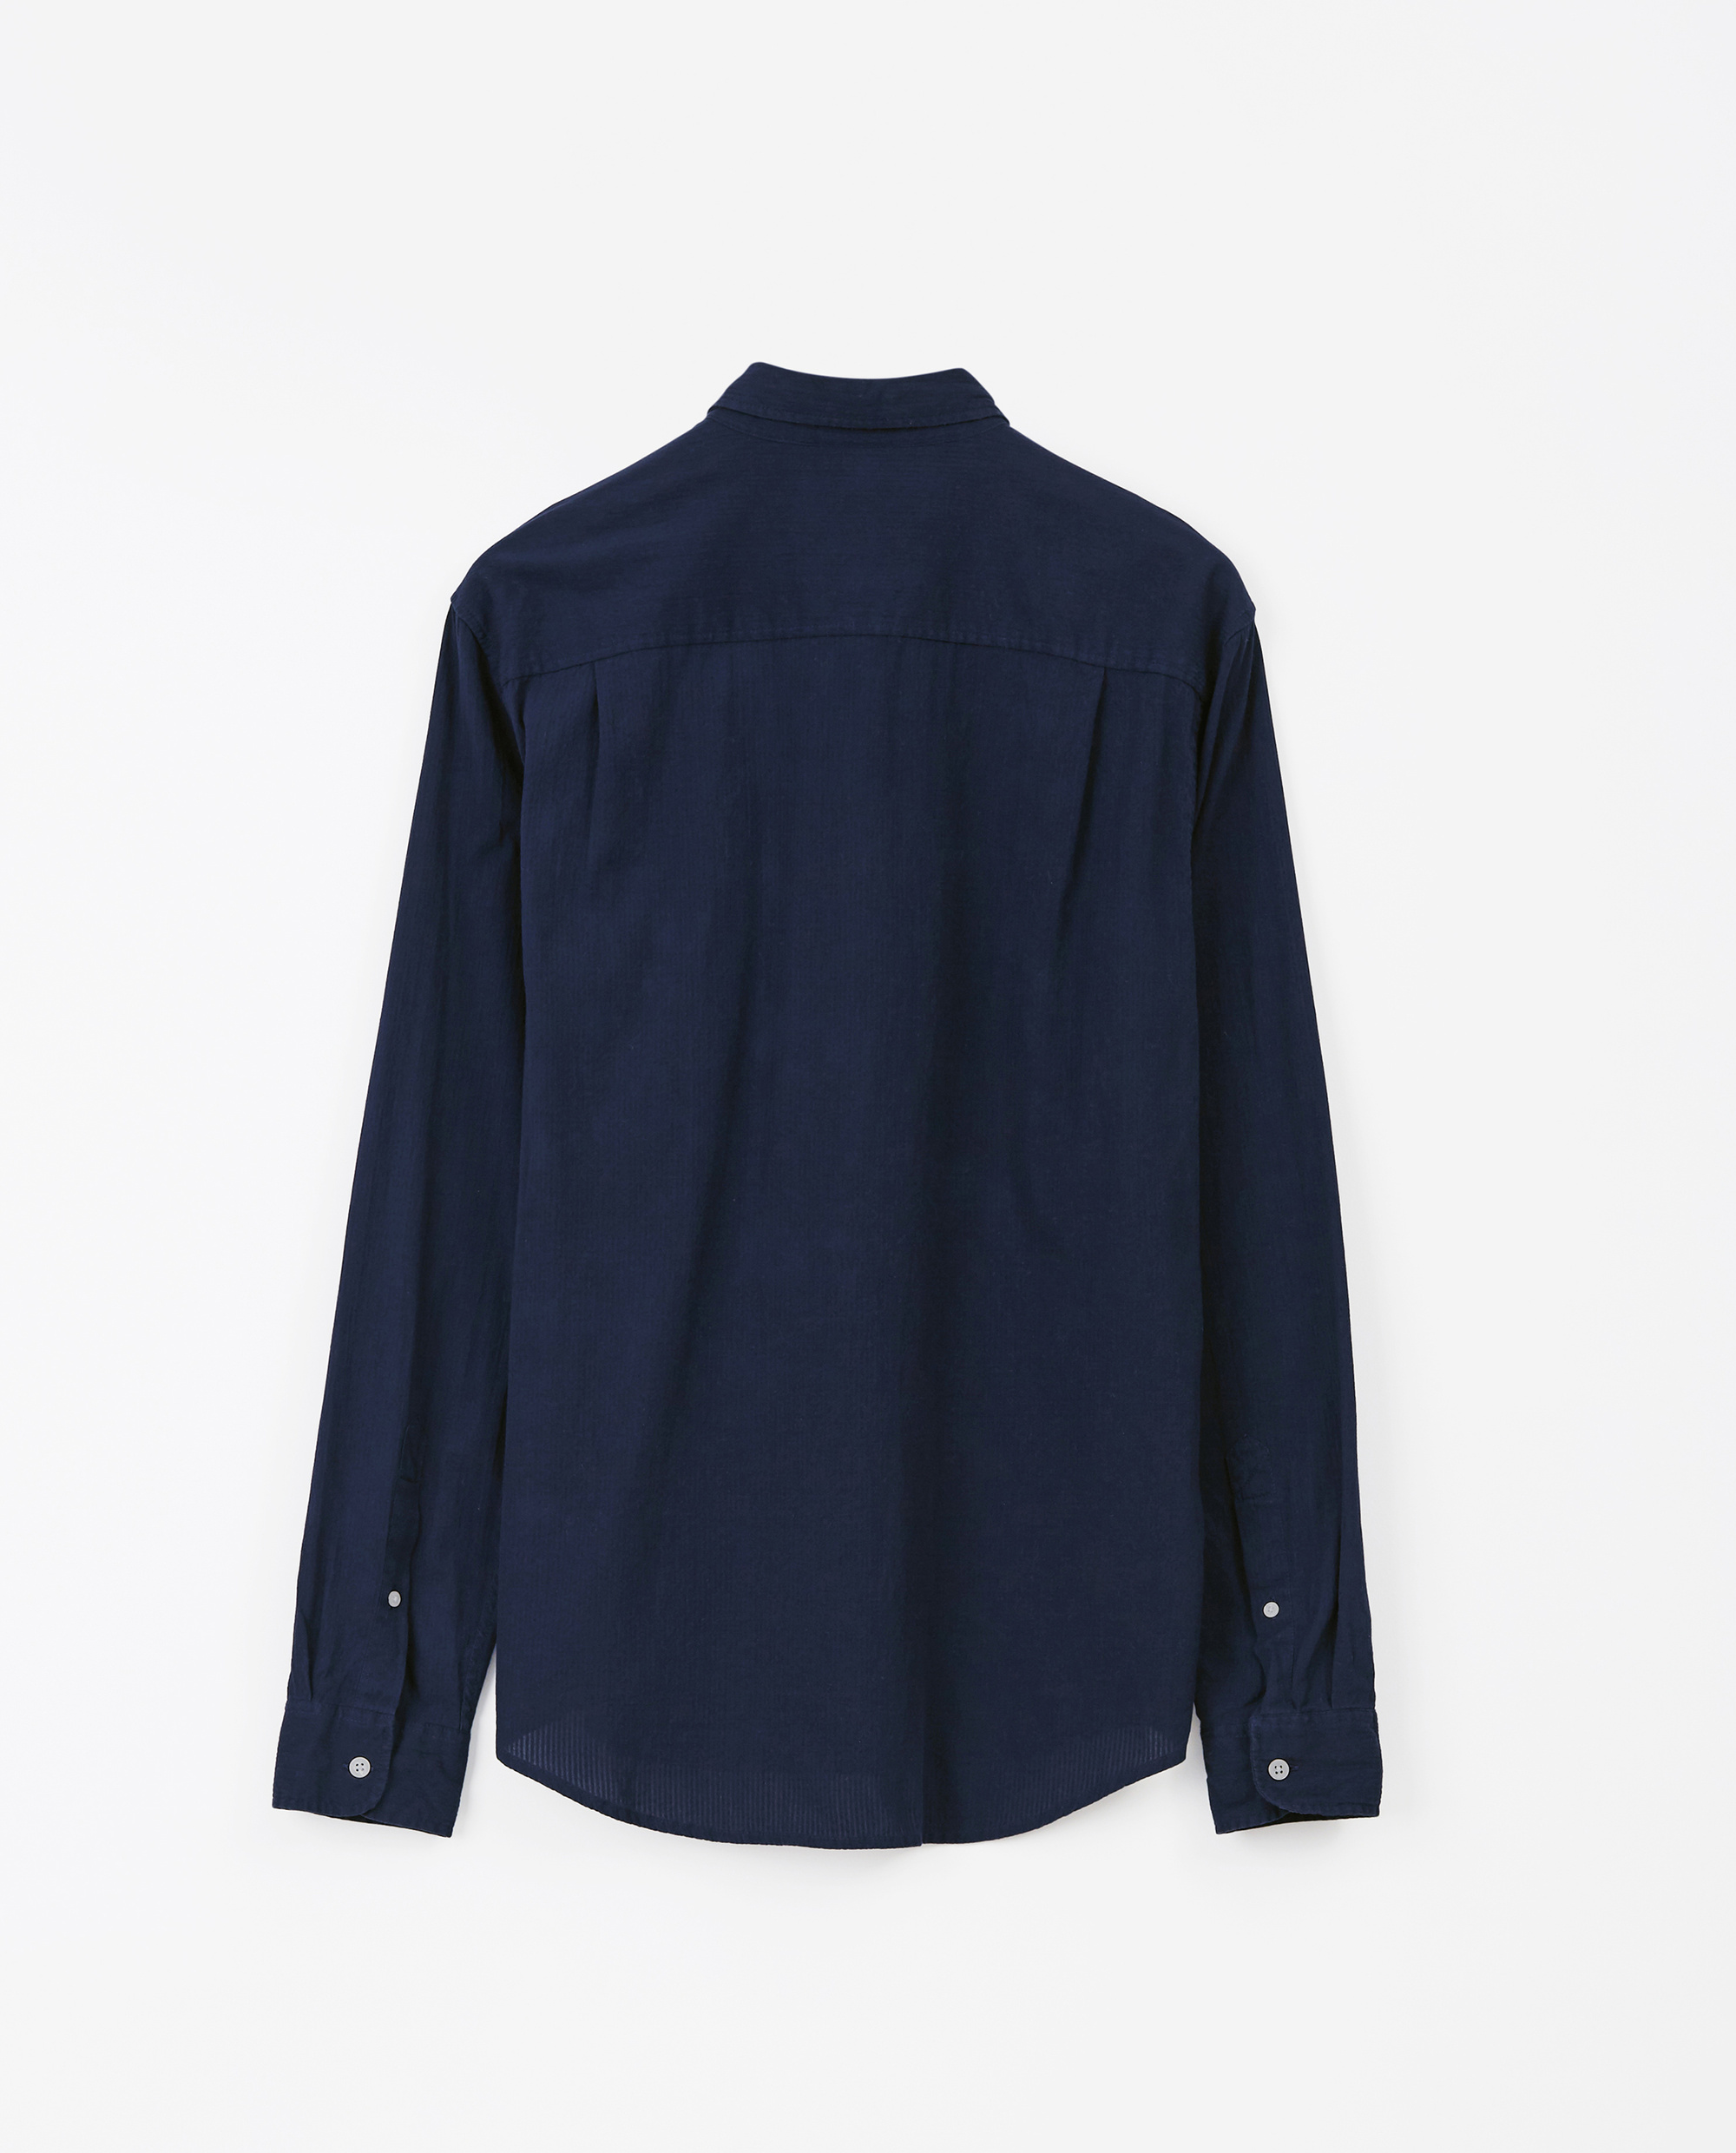 Kyle Oxford Shirt, Dark Blue